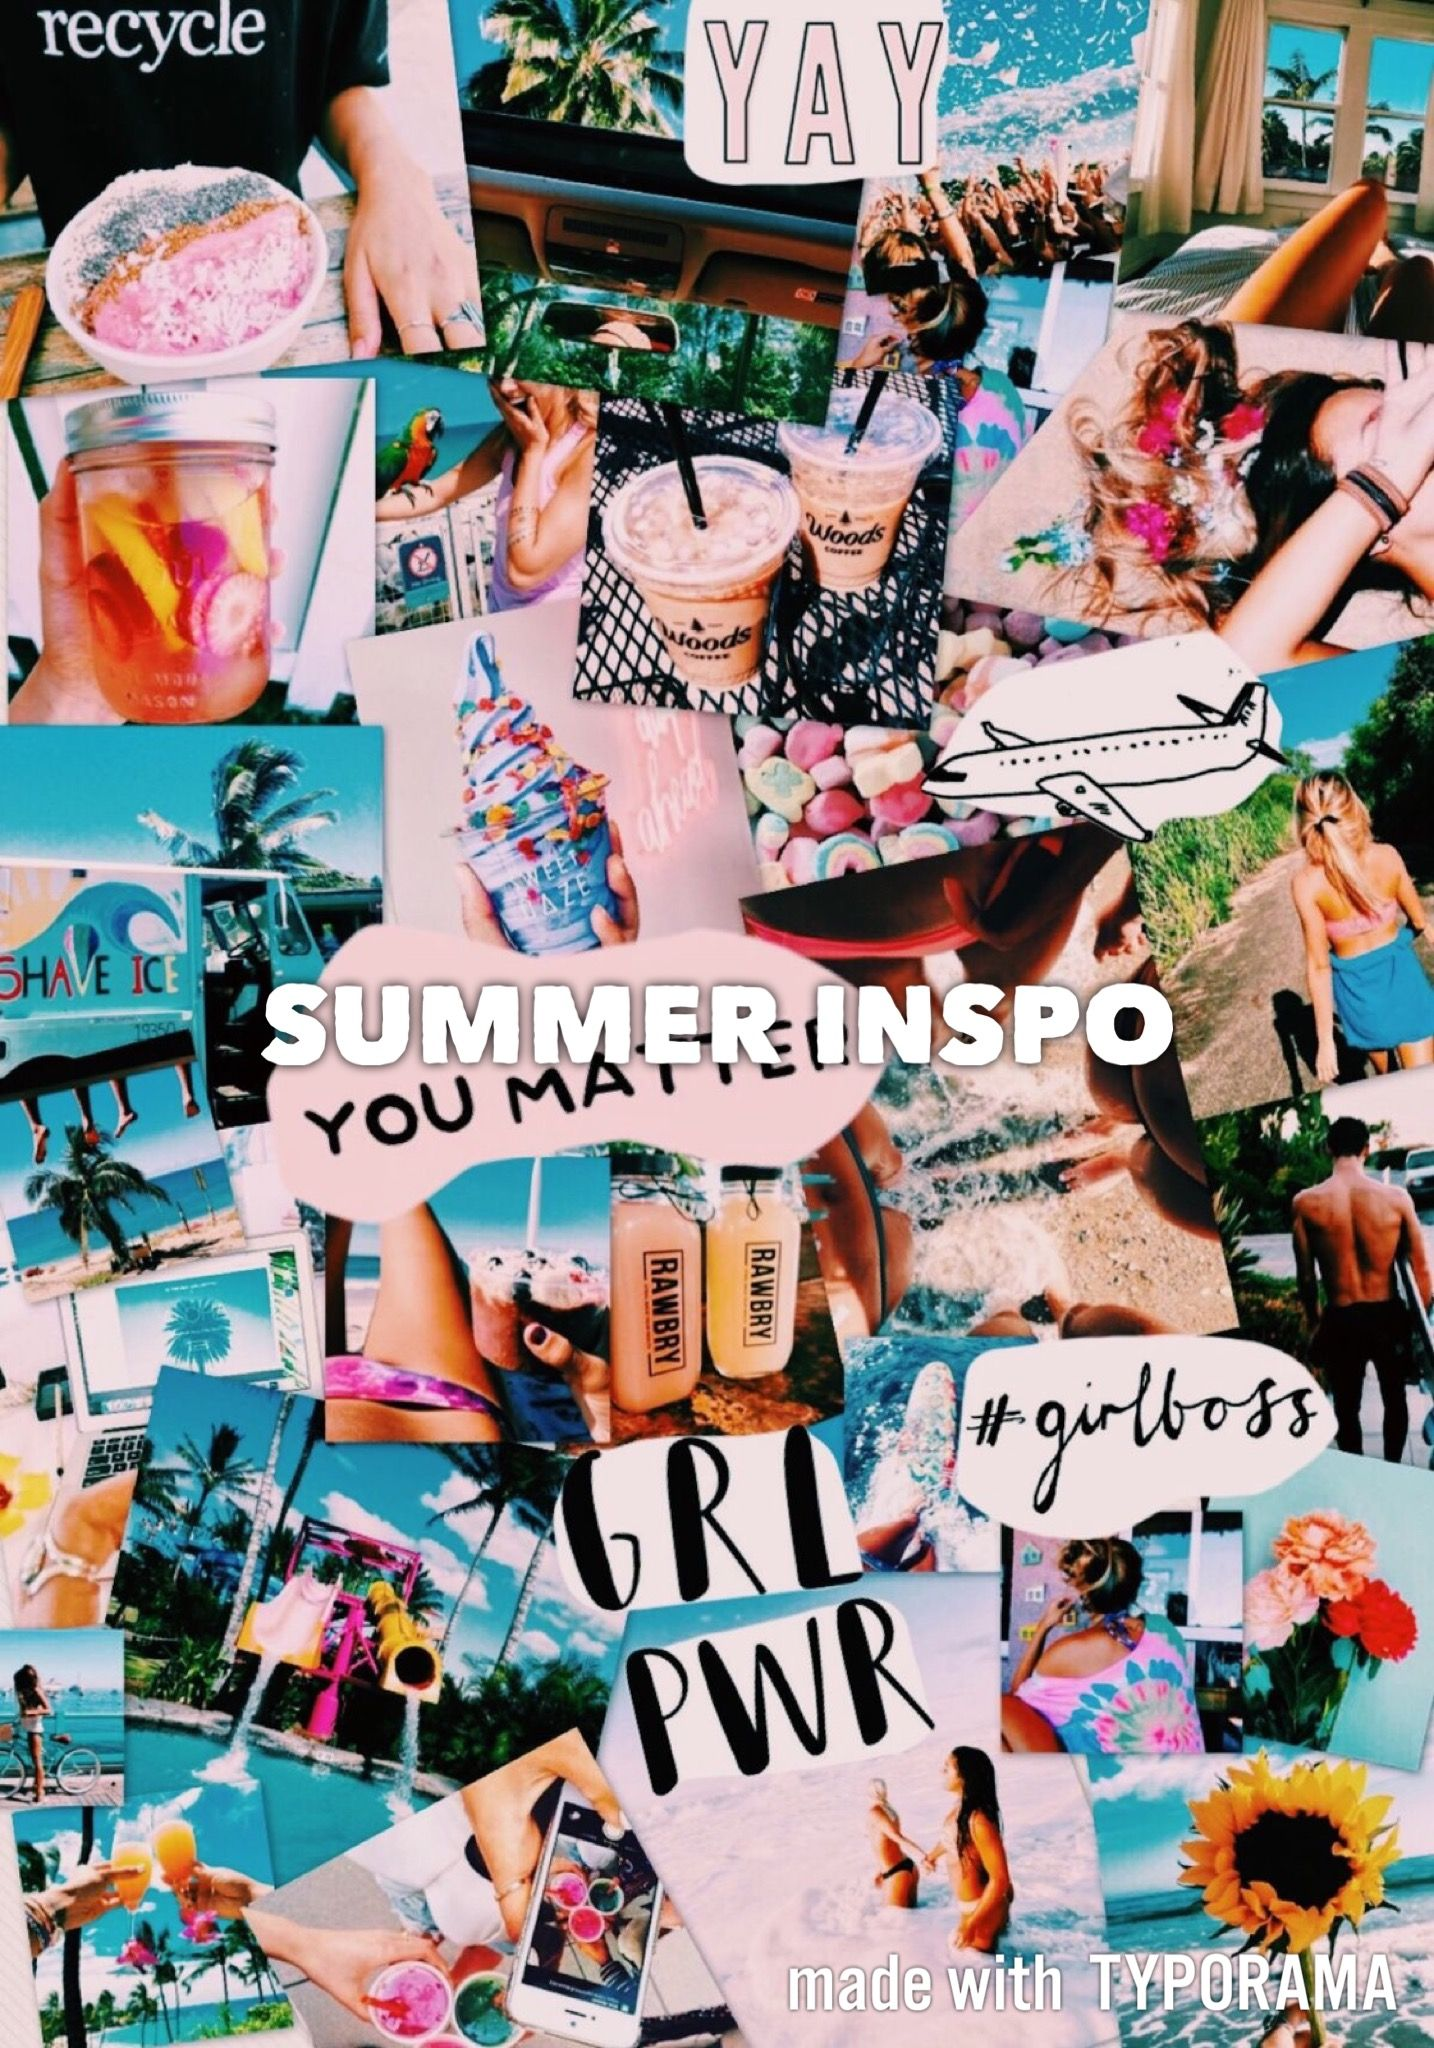 Pin by J💛SSLYN on collage. in 2019 | Collage background, Tumblr wallpaper, Aesthetic wallpapers